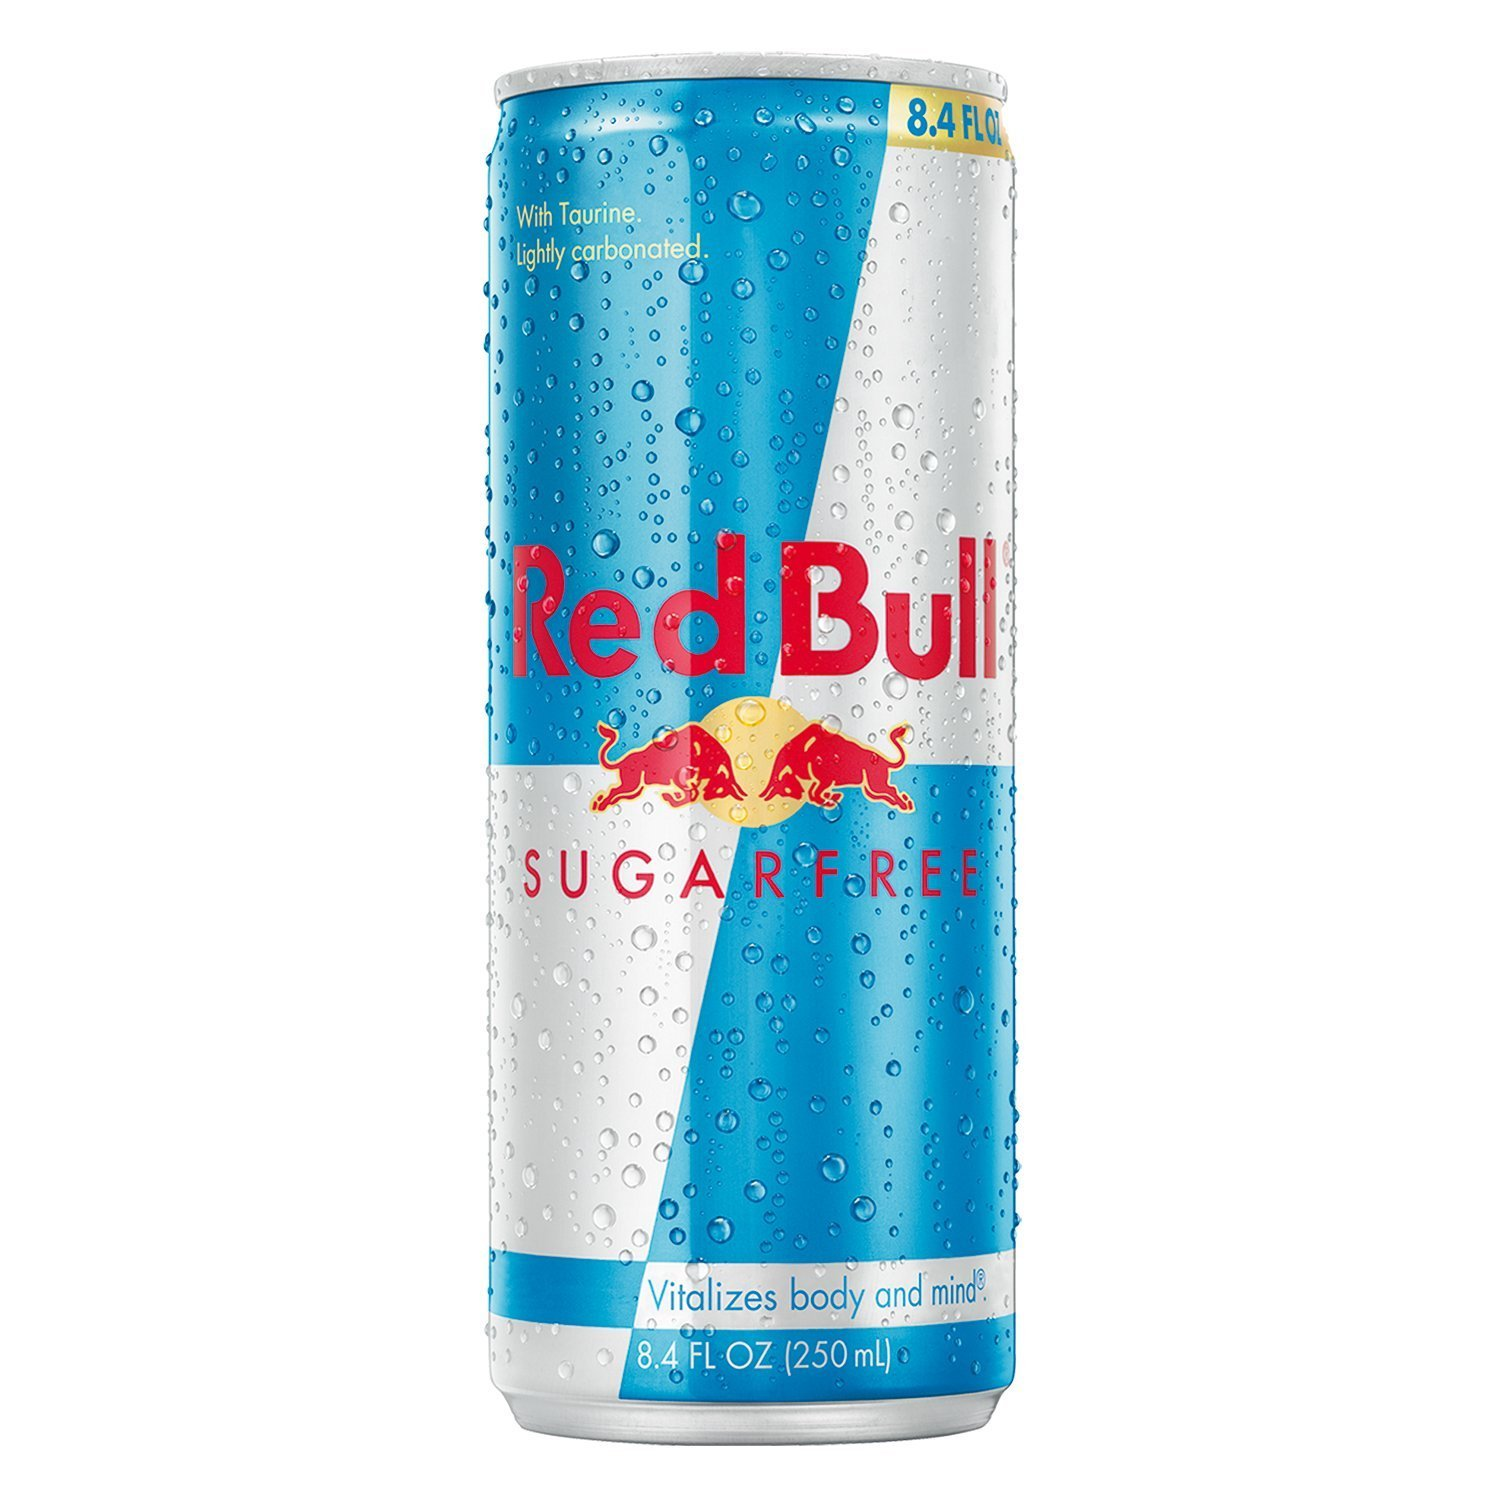 Red Bull Sugarfree, Energy Drink, 8.4 Fl Oz Cans, 12 Count